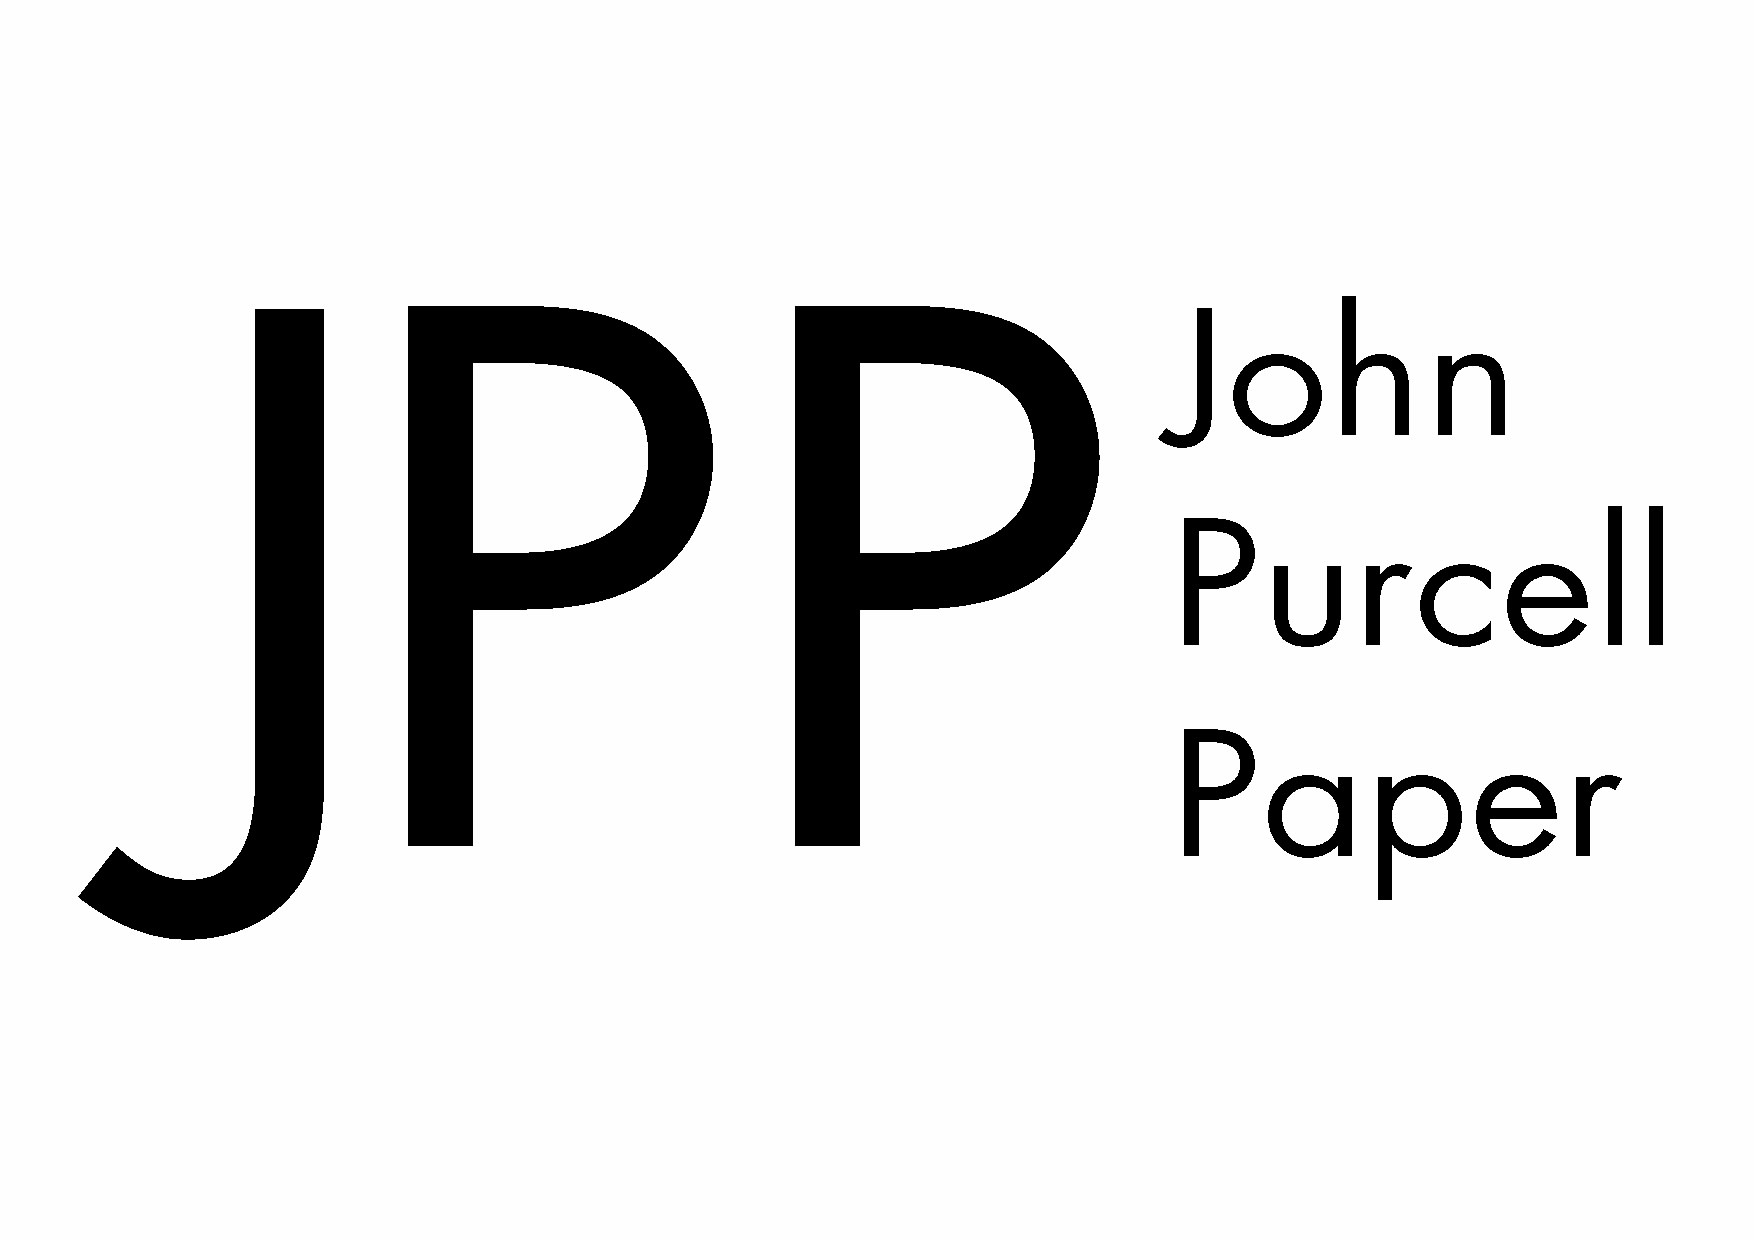 John Purcell Paper Award